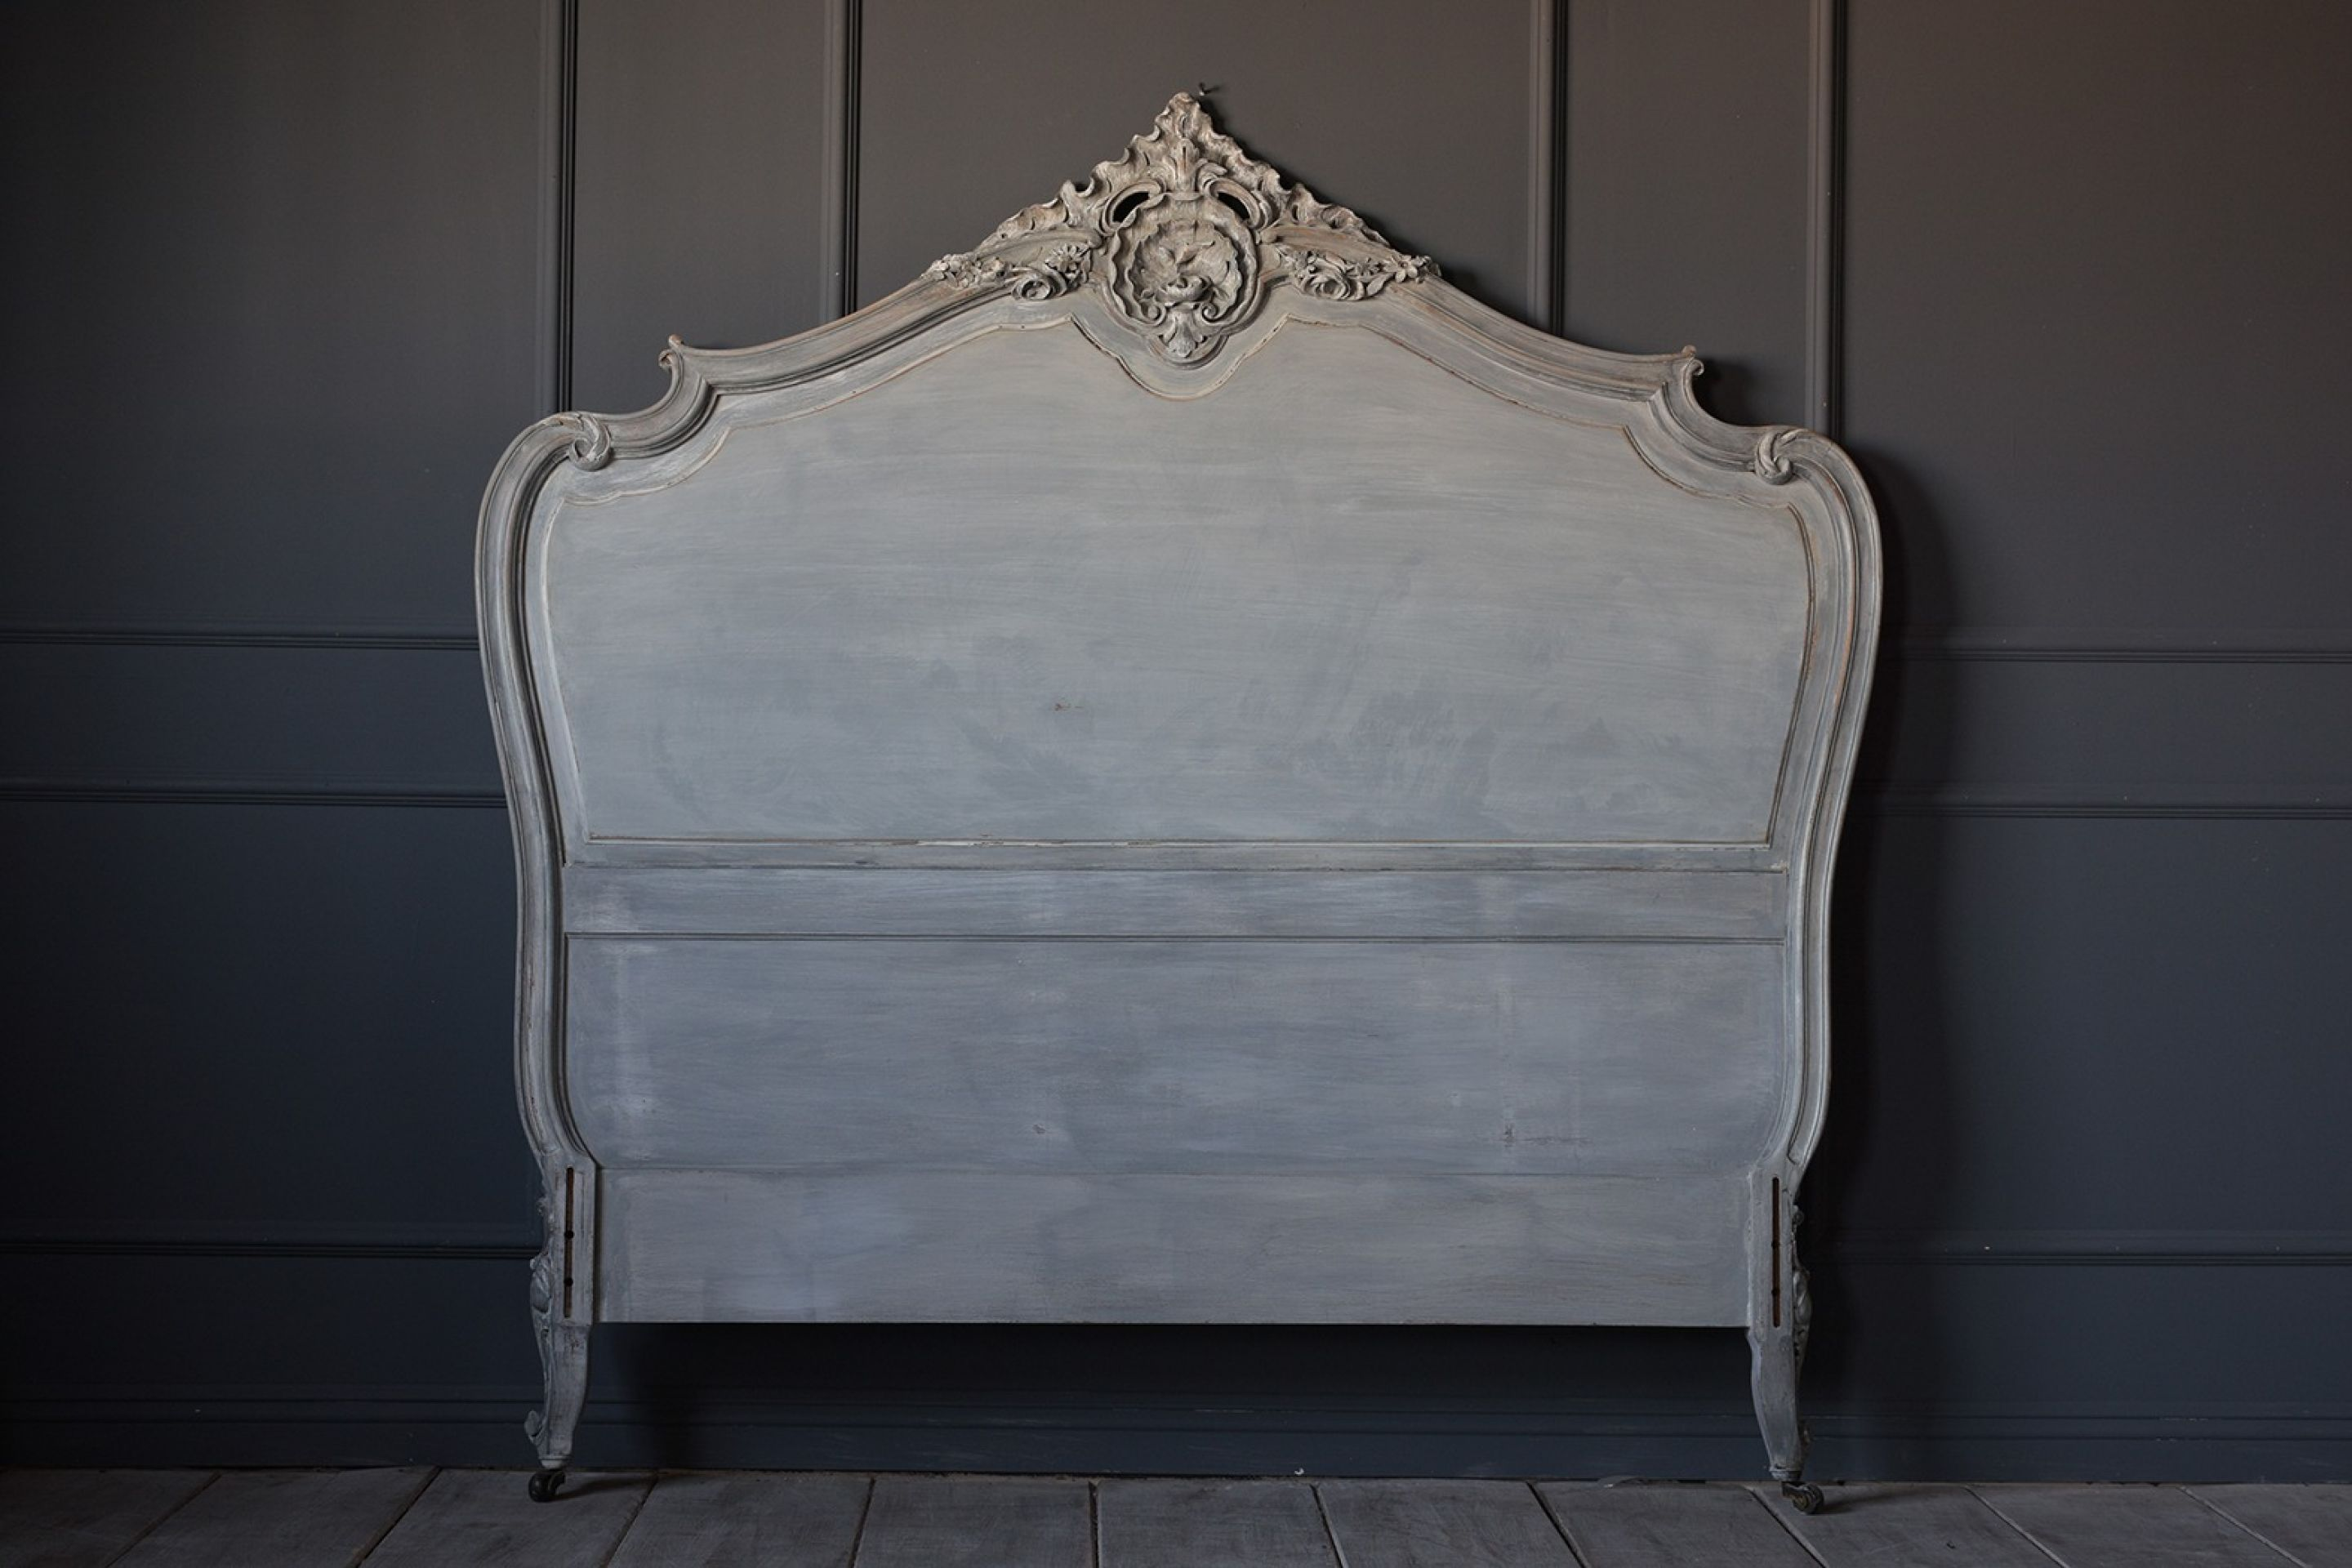 19th Century Distressed Finish Louis XV Style Bed Frame